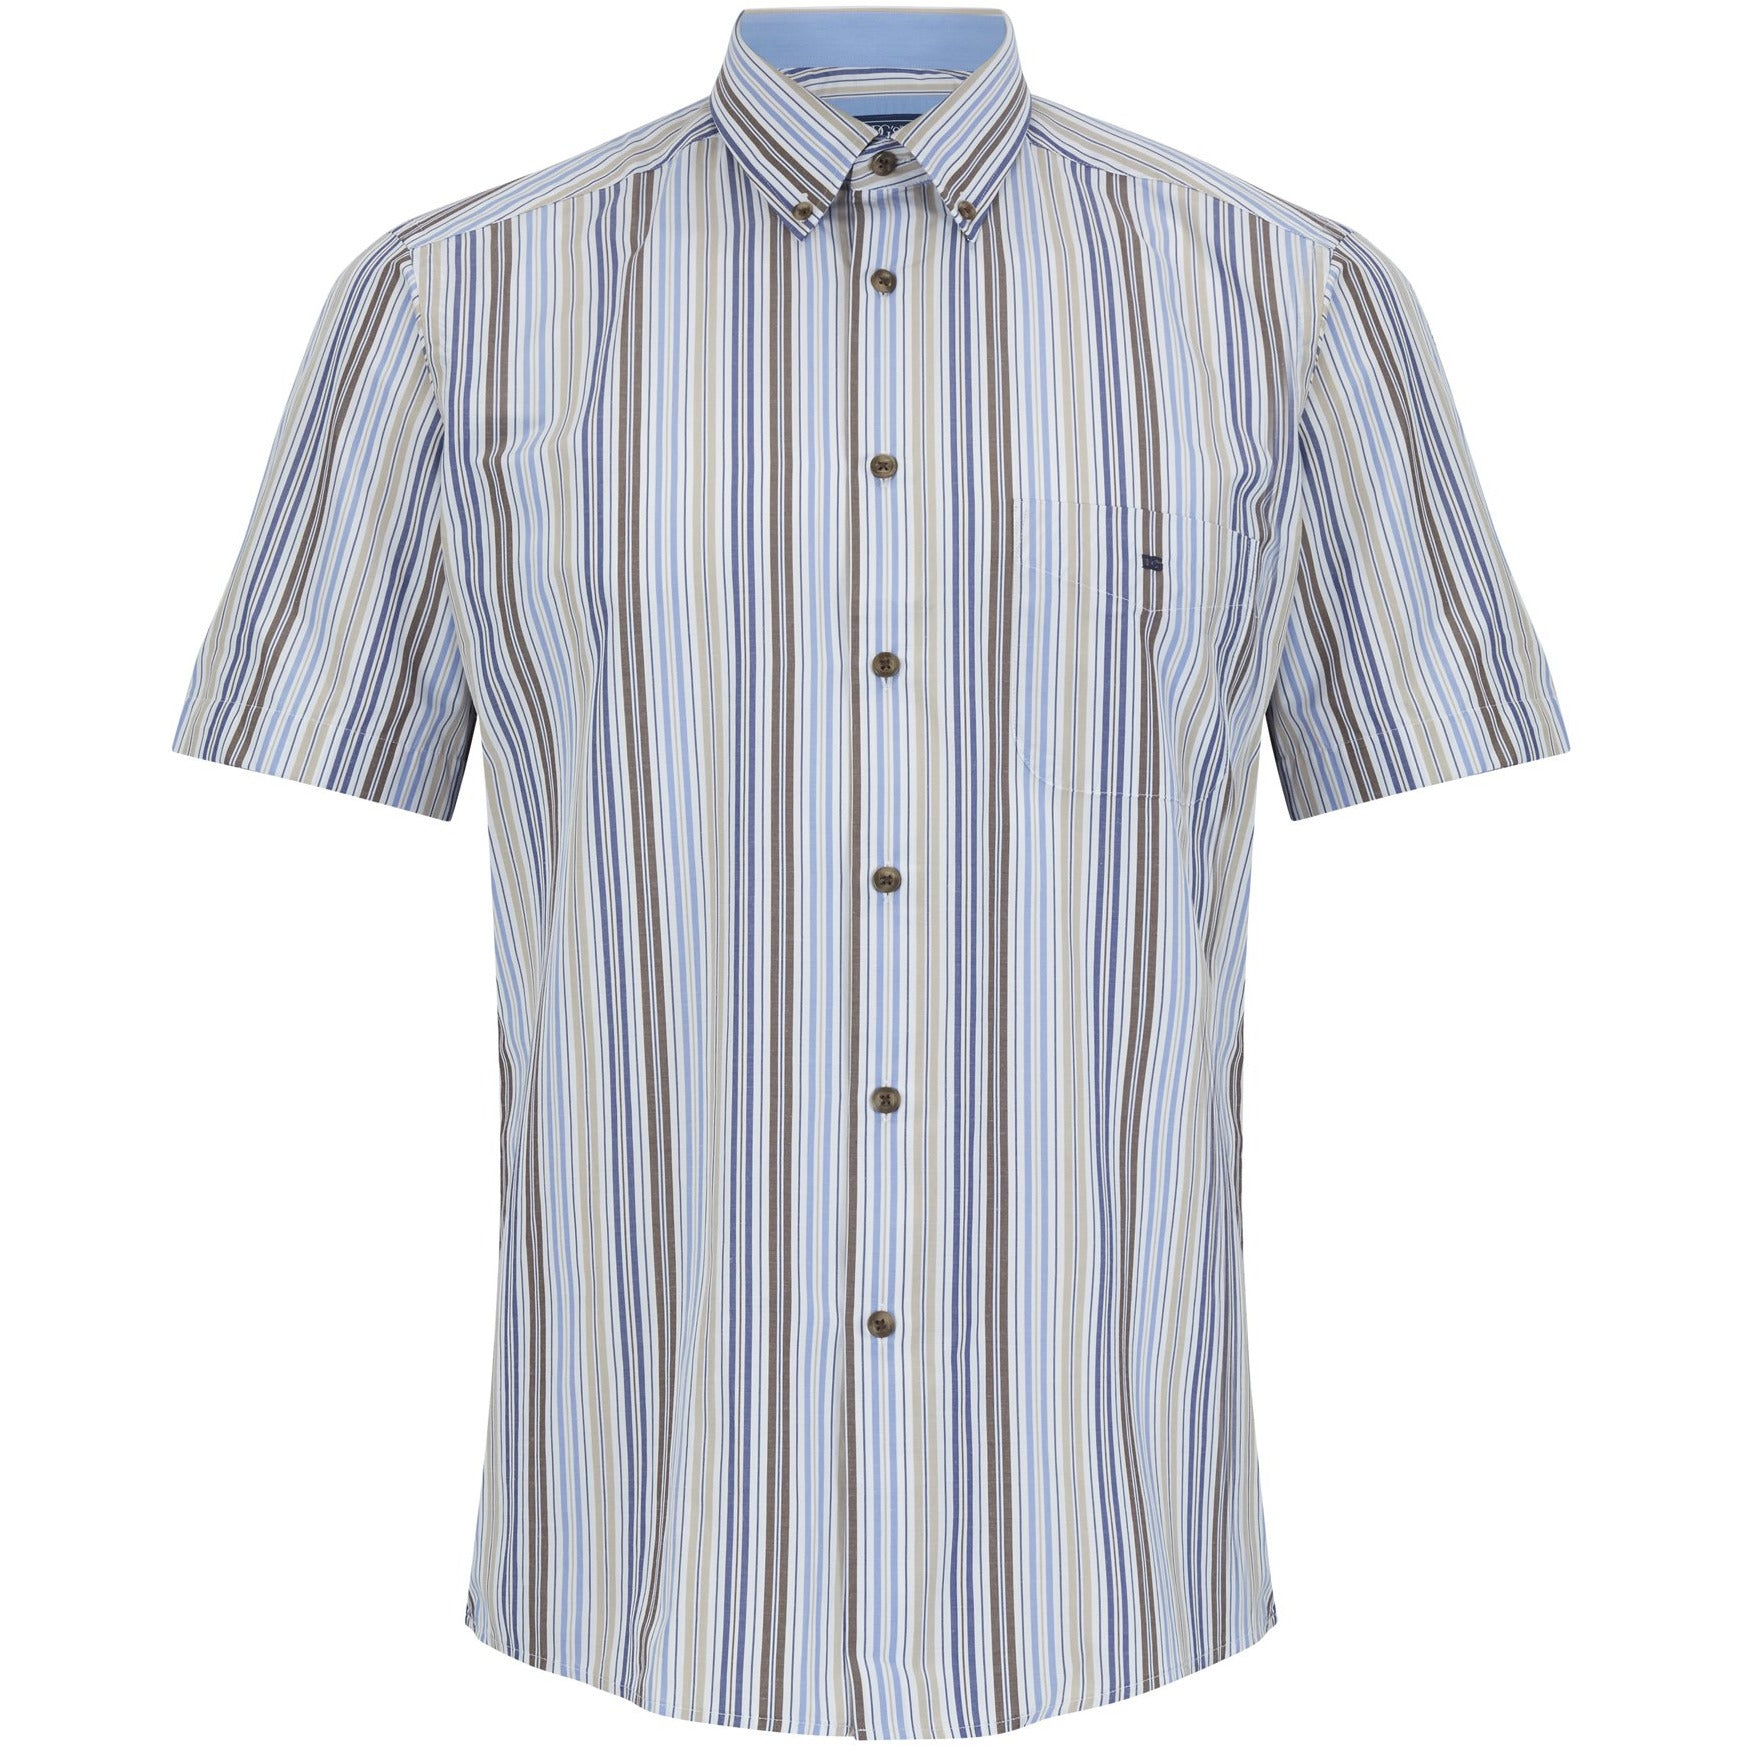 DANIEL GRAHAME : Sand and White Short Sleeve Shirt